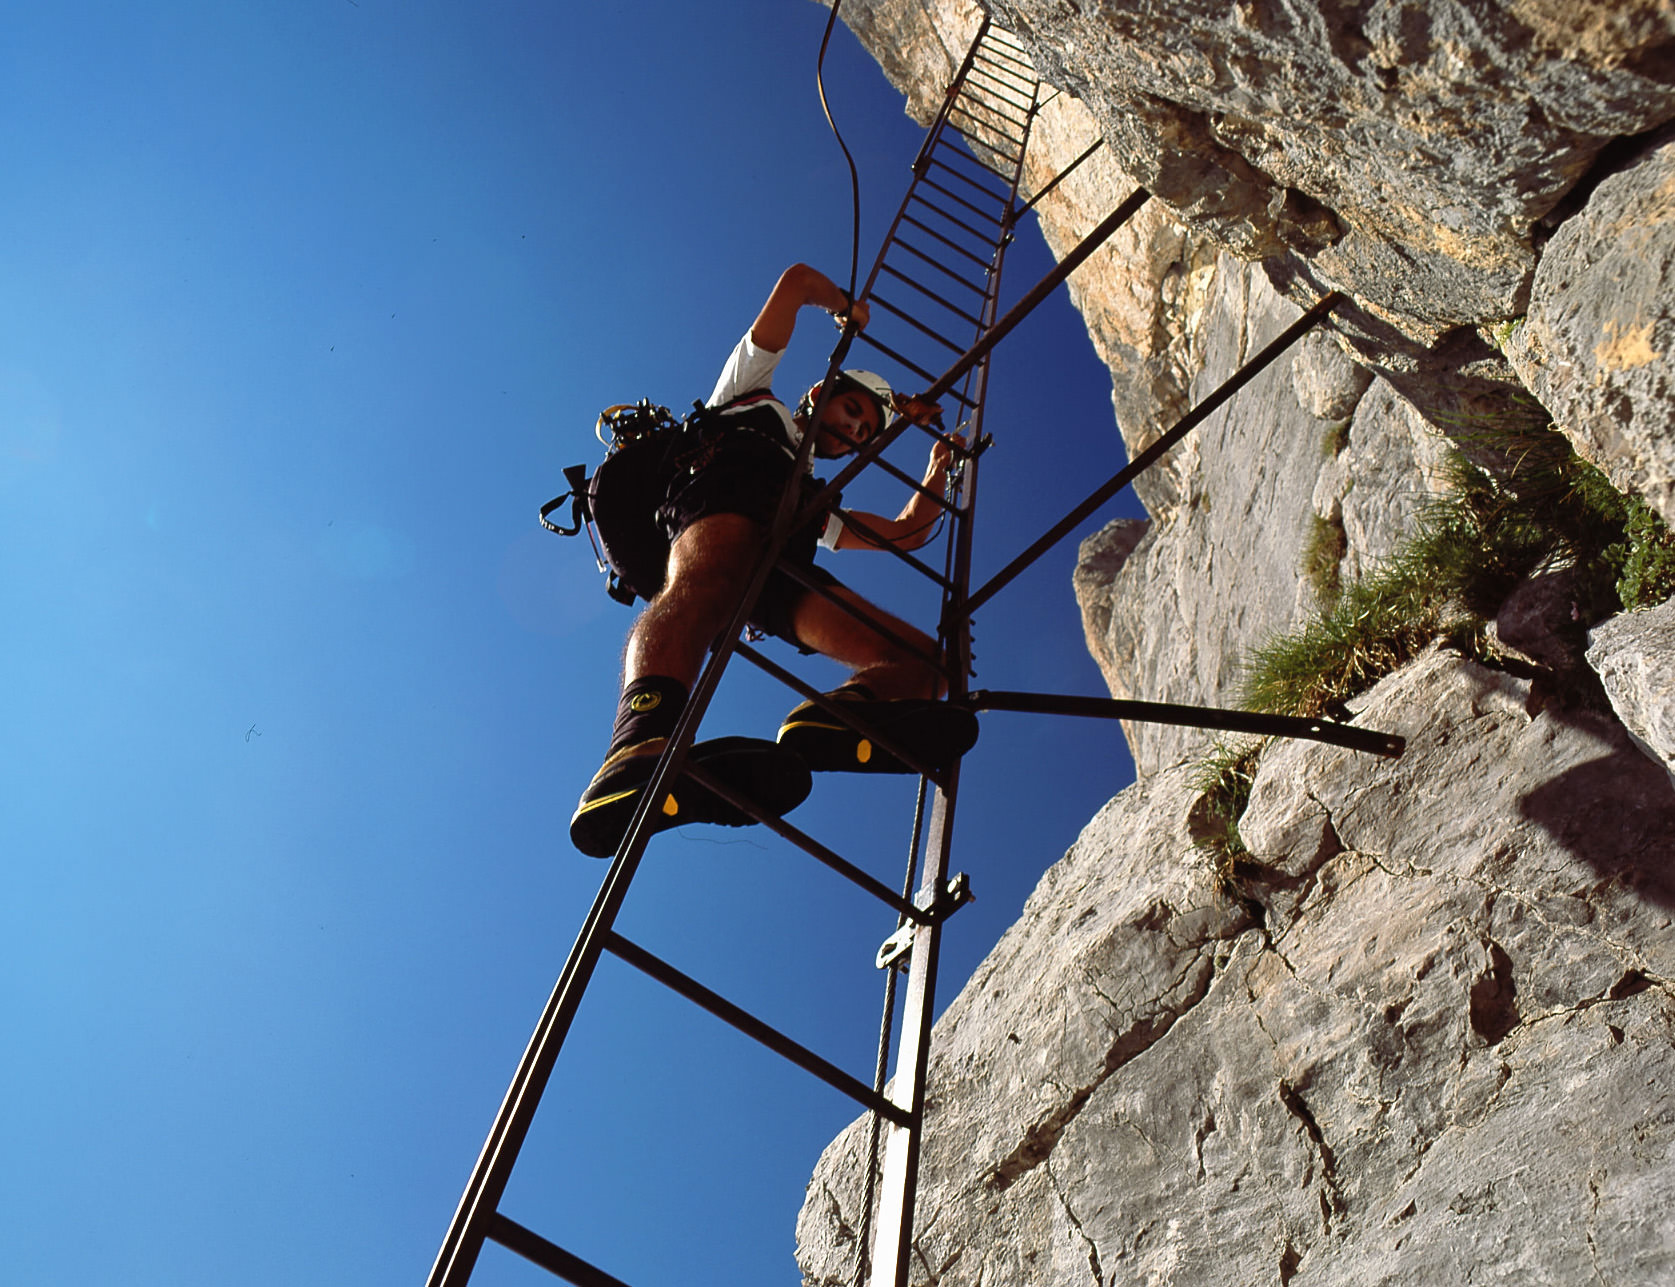 Via_Ferrata_Dolomites.jpg